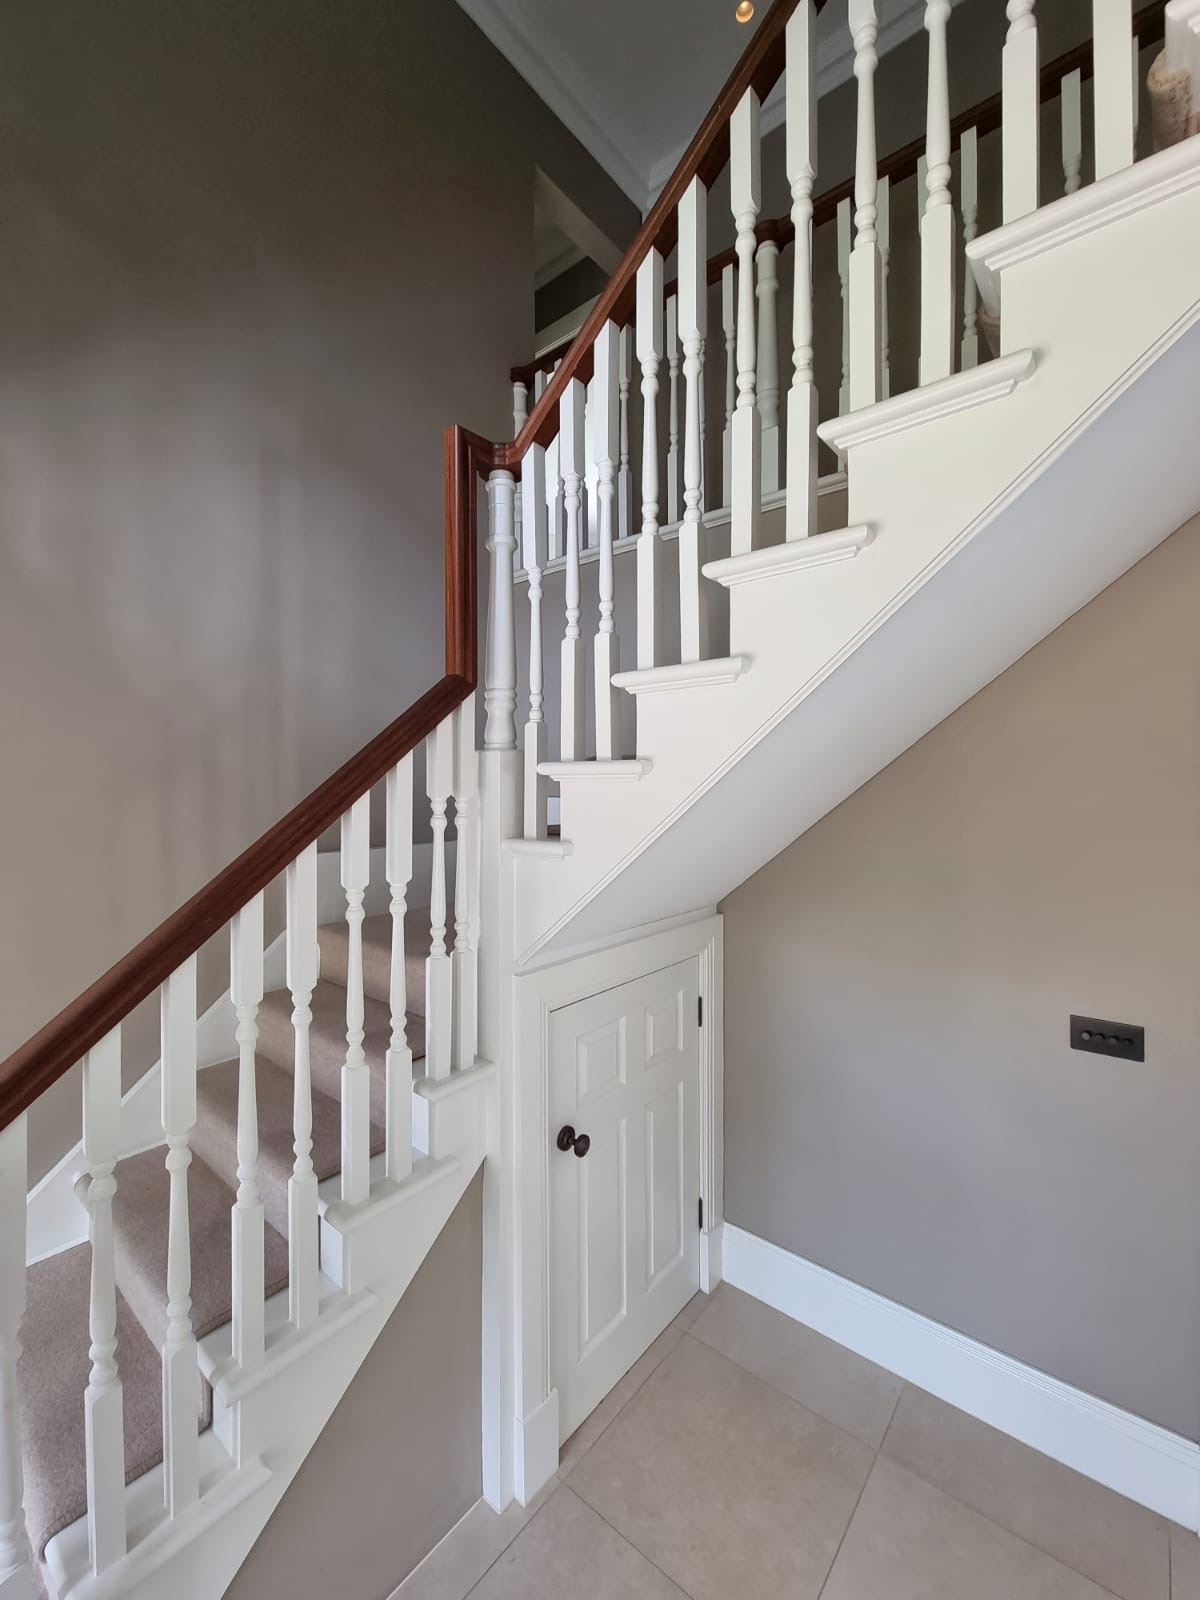 Timber staircase in hallway of large country house